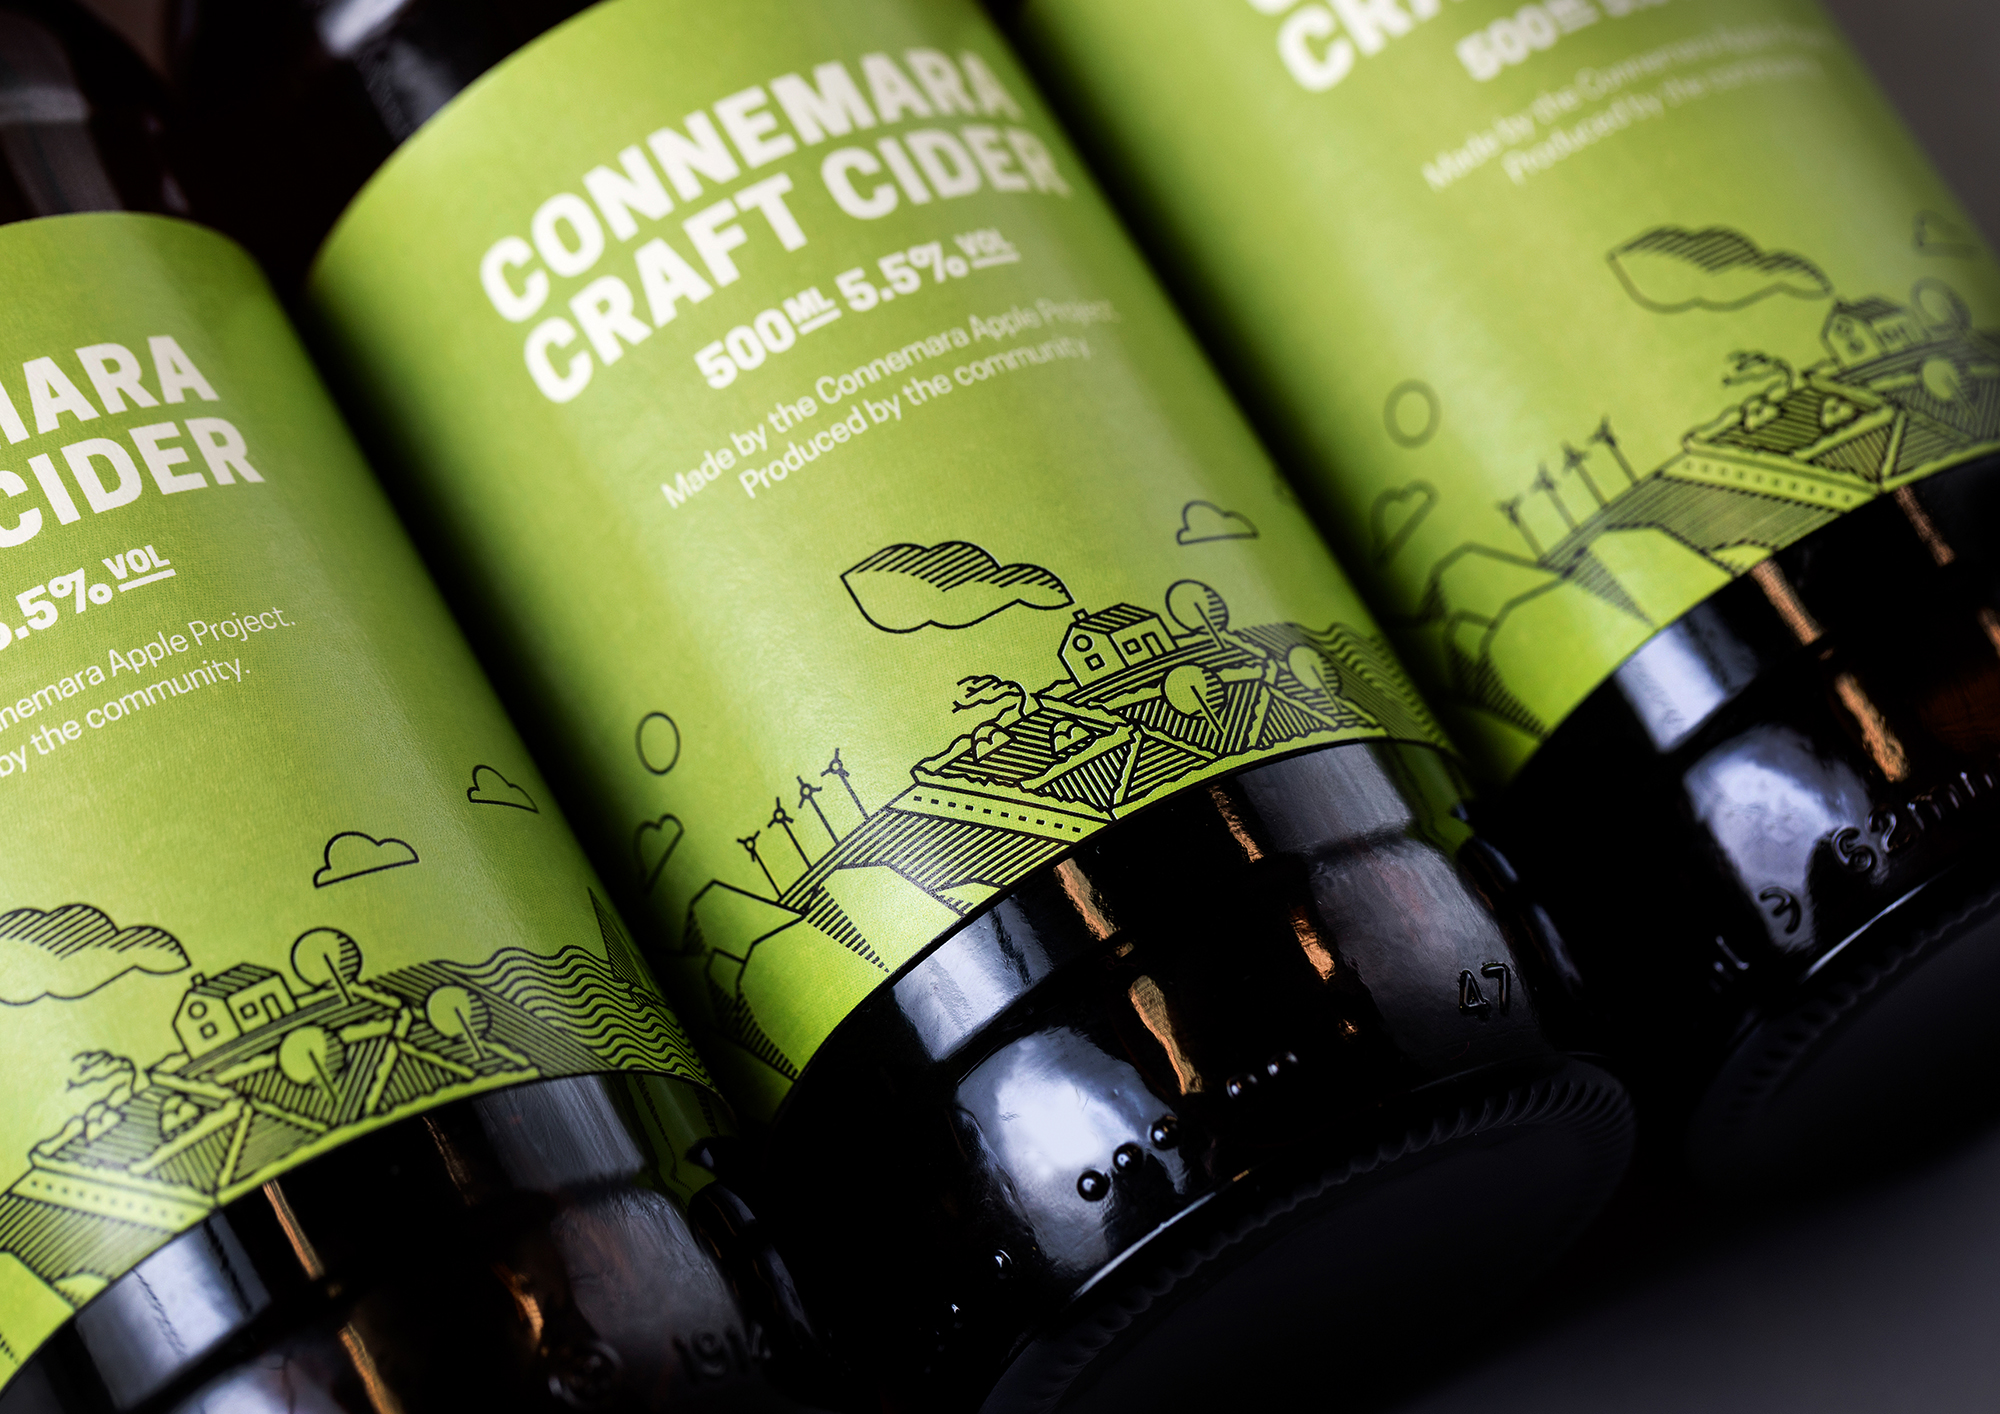 Cover image: Connemara Craft Cider